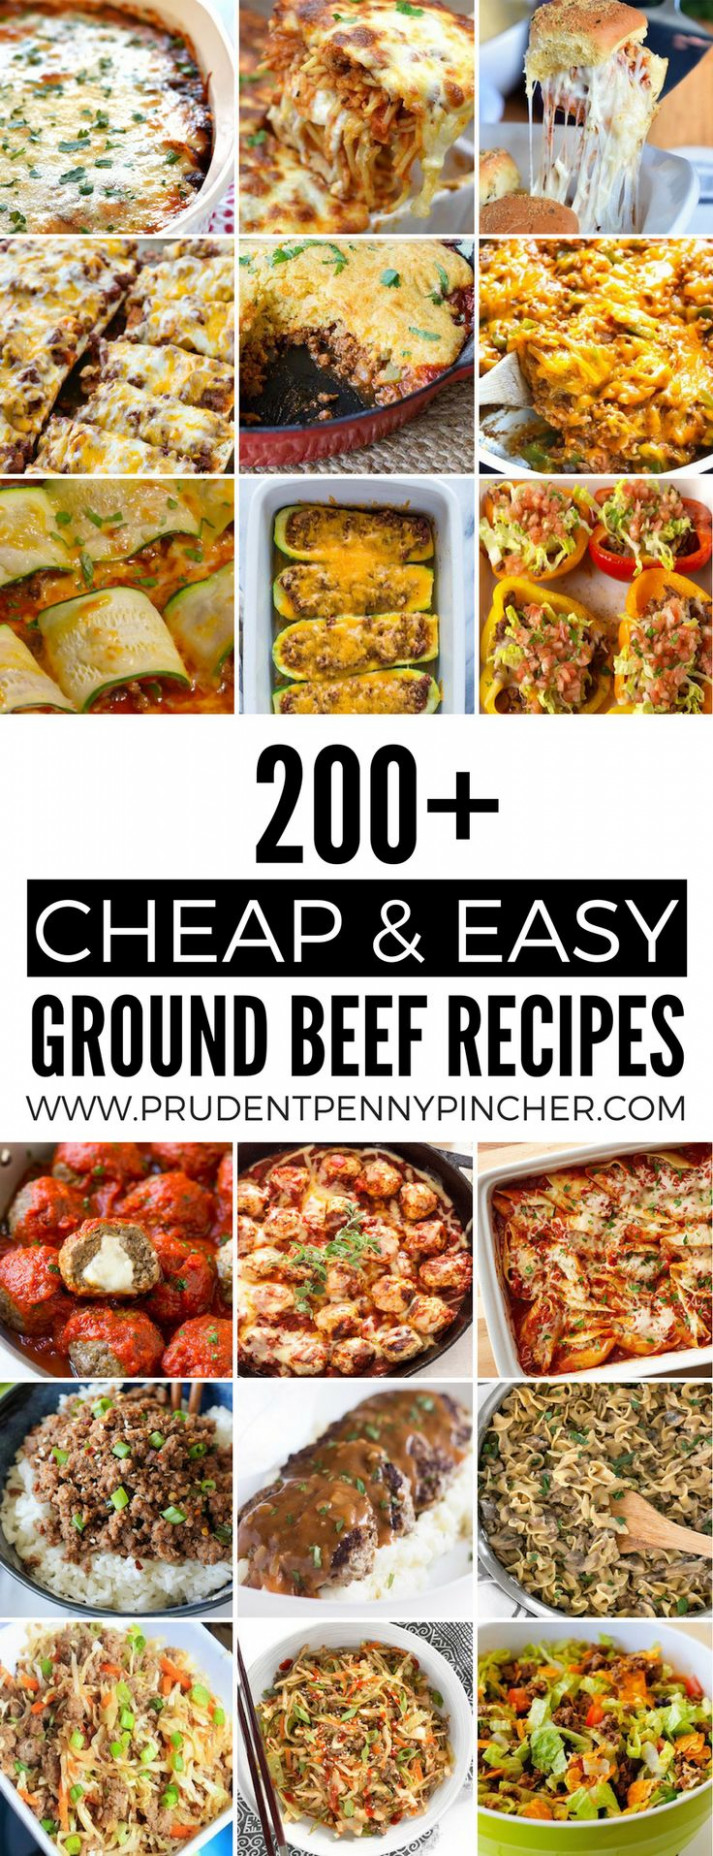 Get 20+ Cheap recipes ideas on Pinterest without signing ...